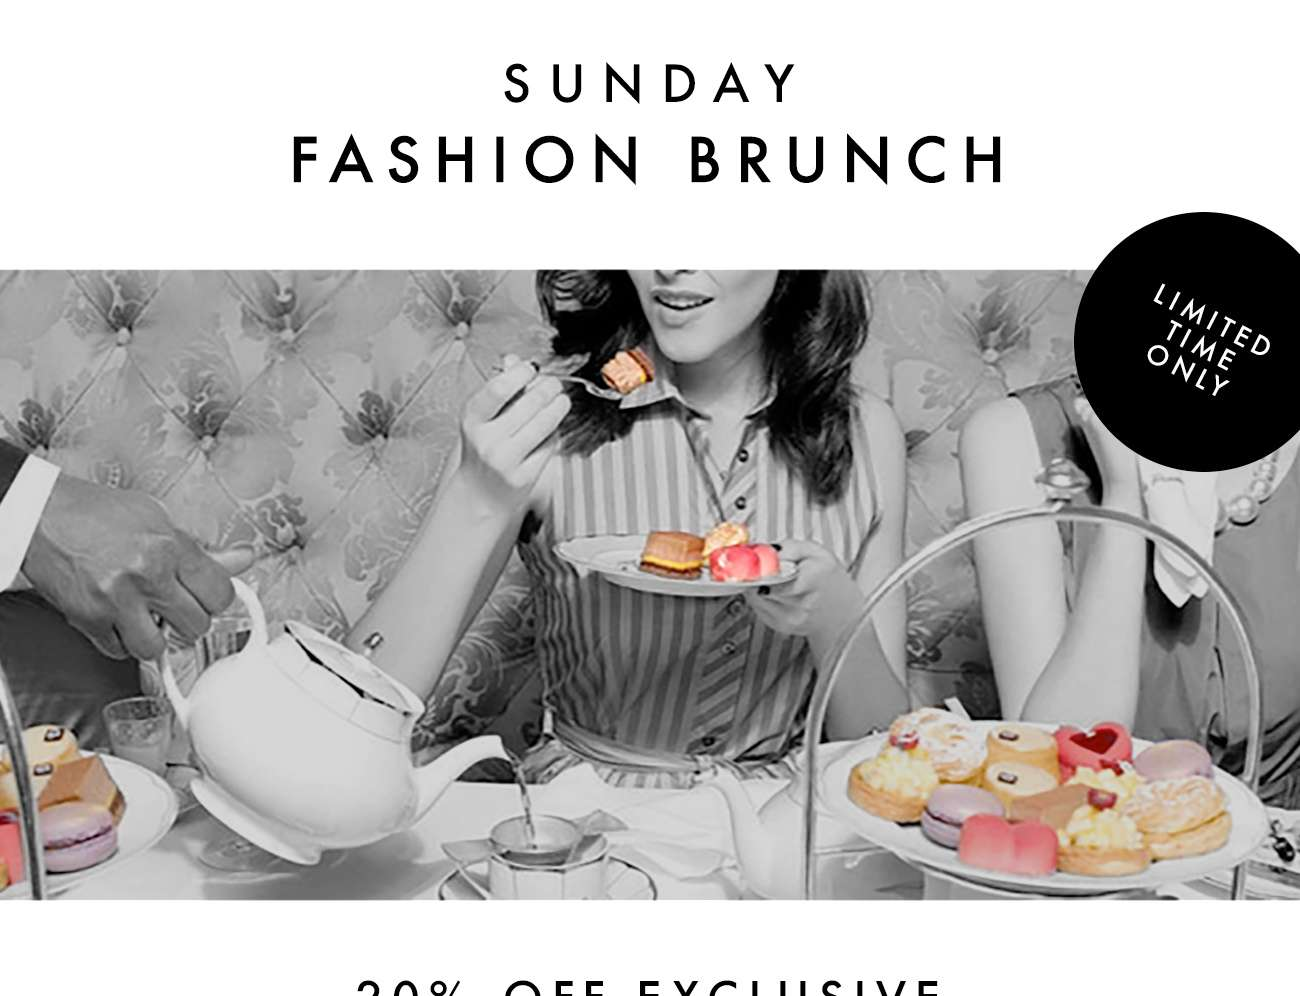 SUNDAY FASHION BRUNCH